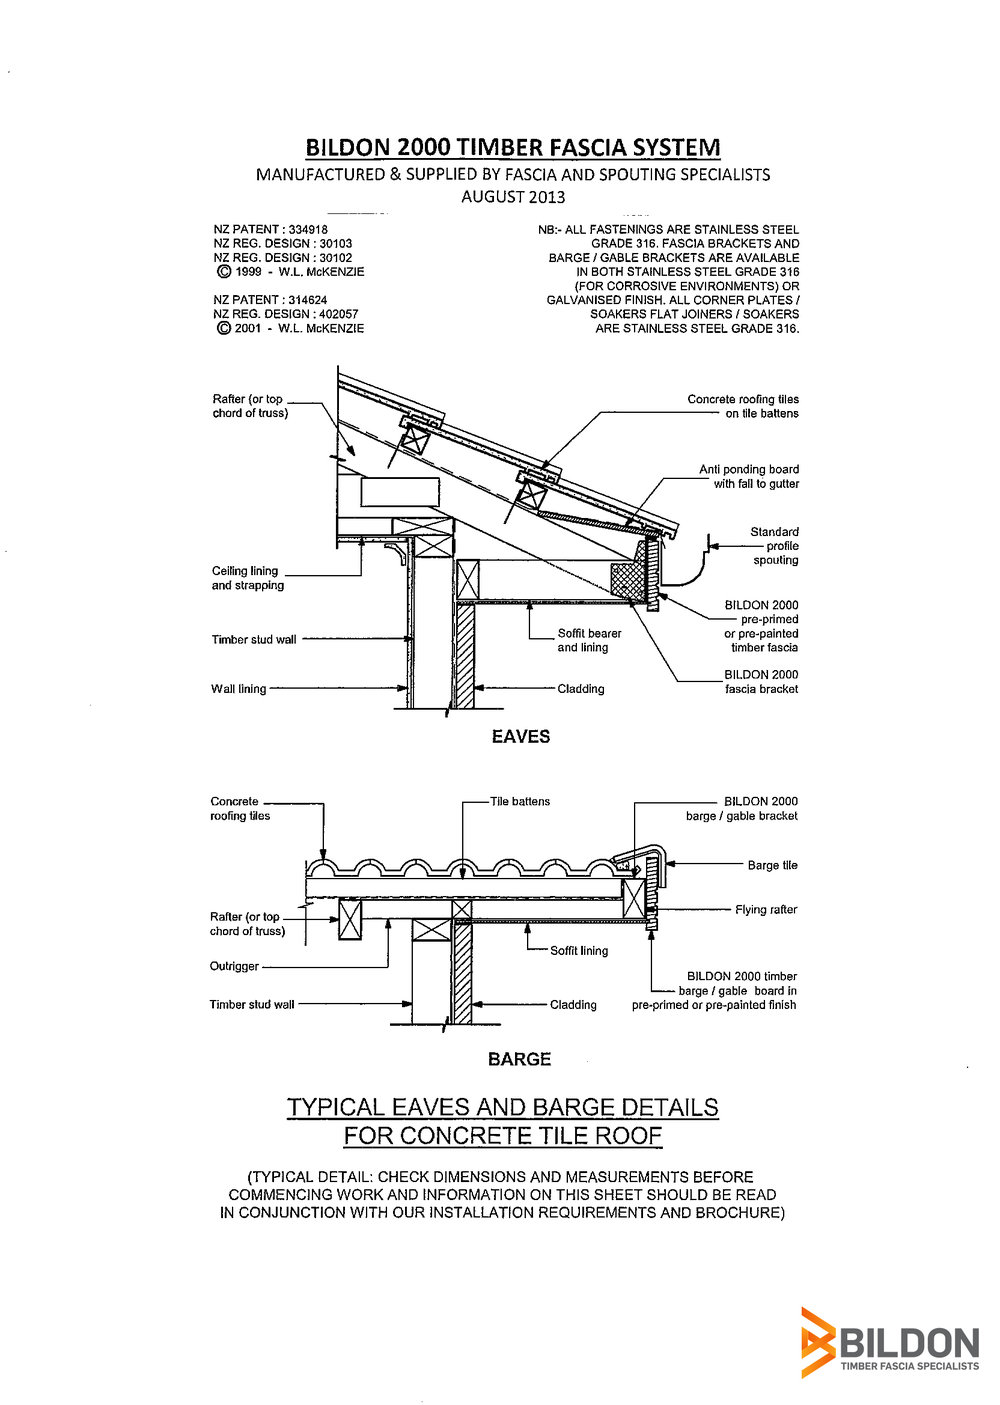 Typical Eaves and Barge Details for Concrete Tile Roof.jpg